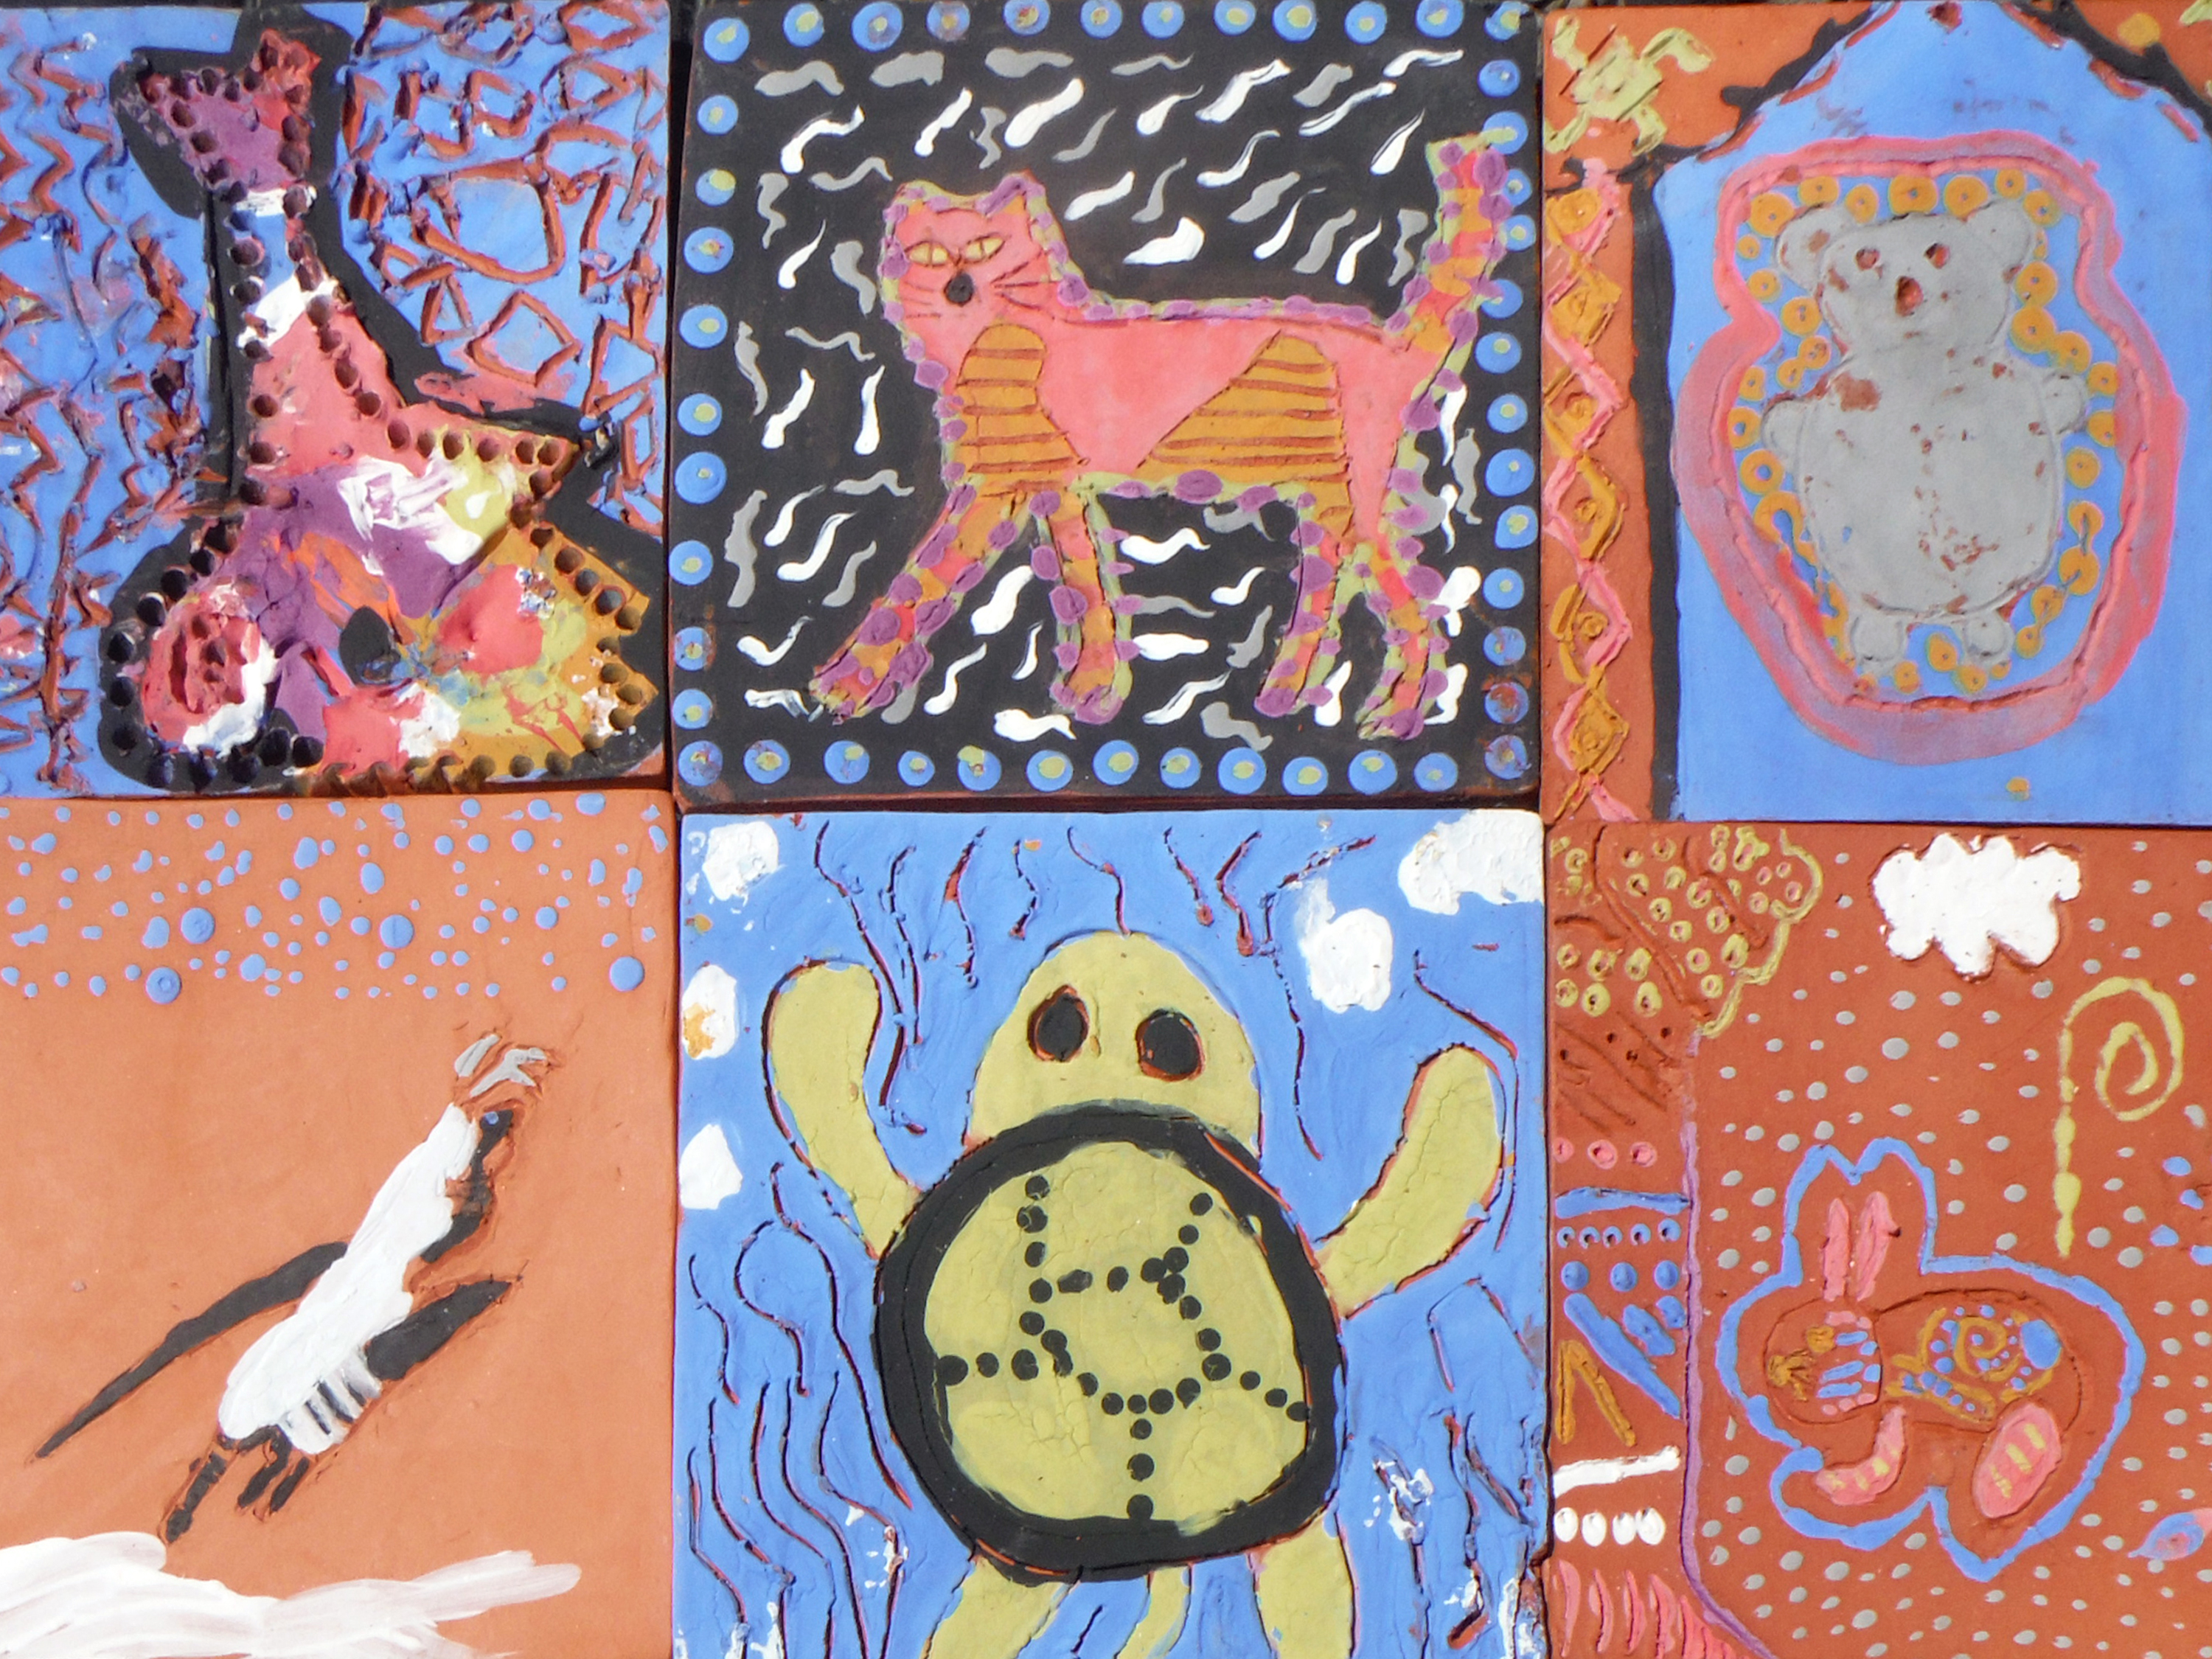 Ceramic tiles made in youth summer art camp